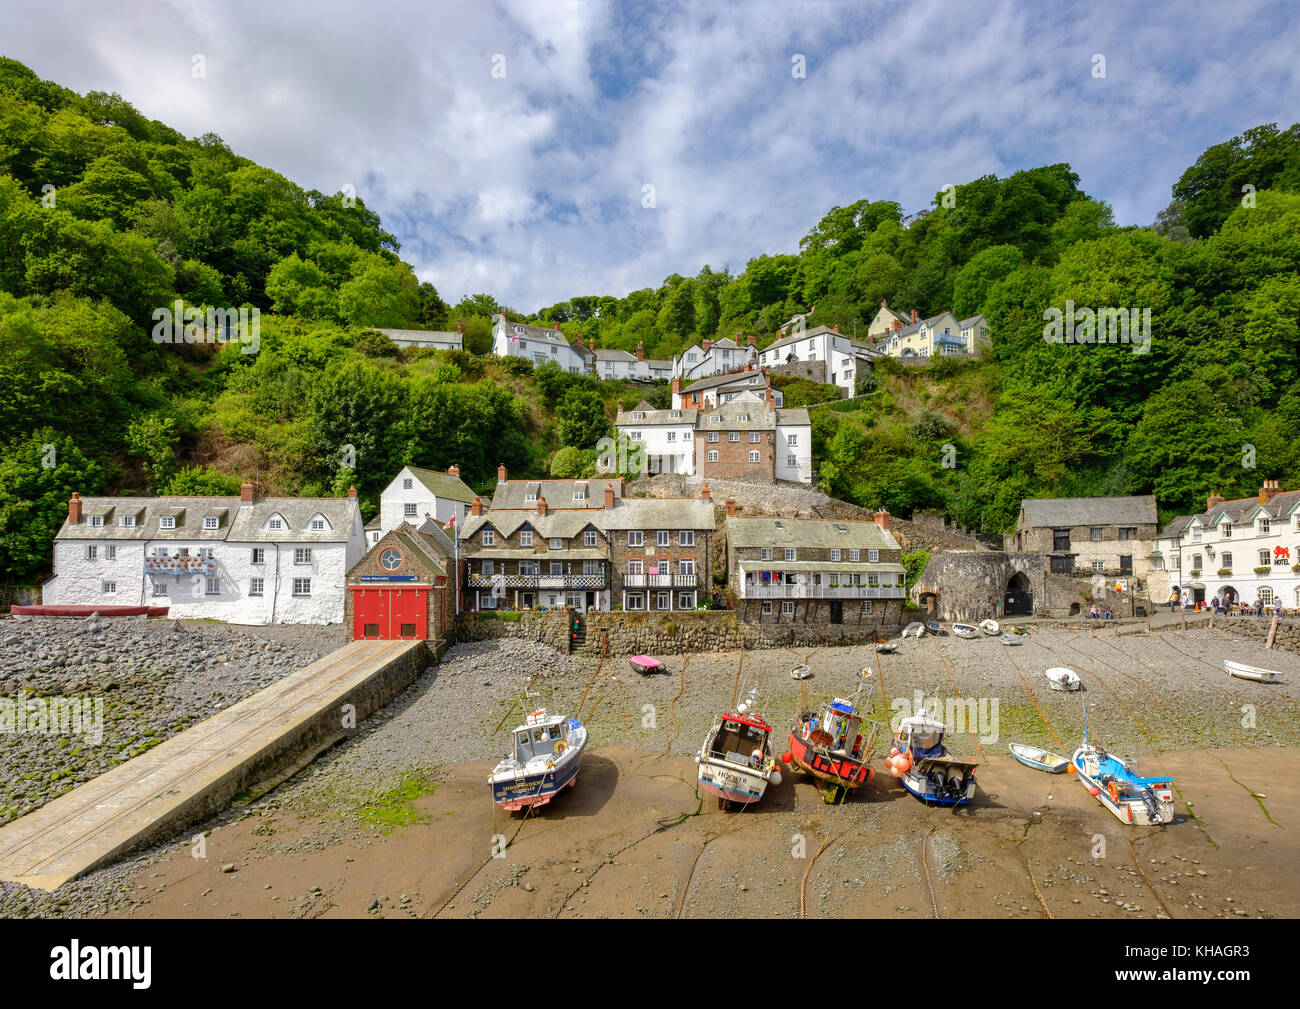 Fishing port, Clovelly, Devon, England, Great Britain - Stock Image